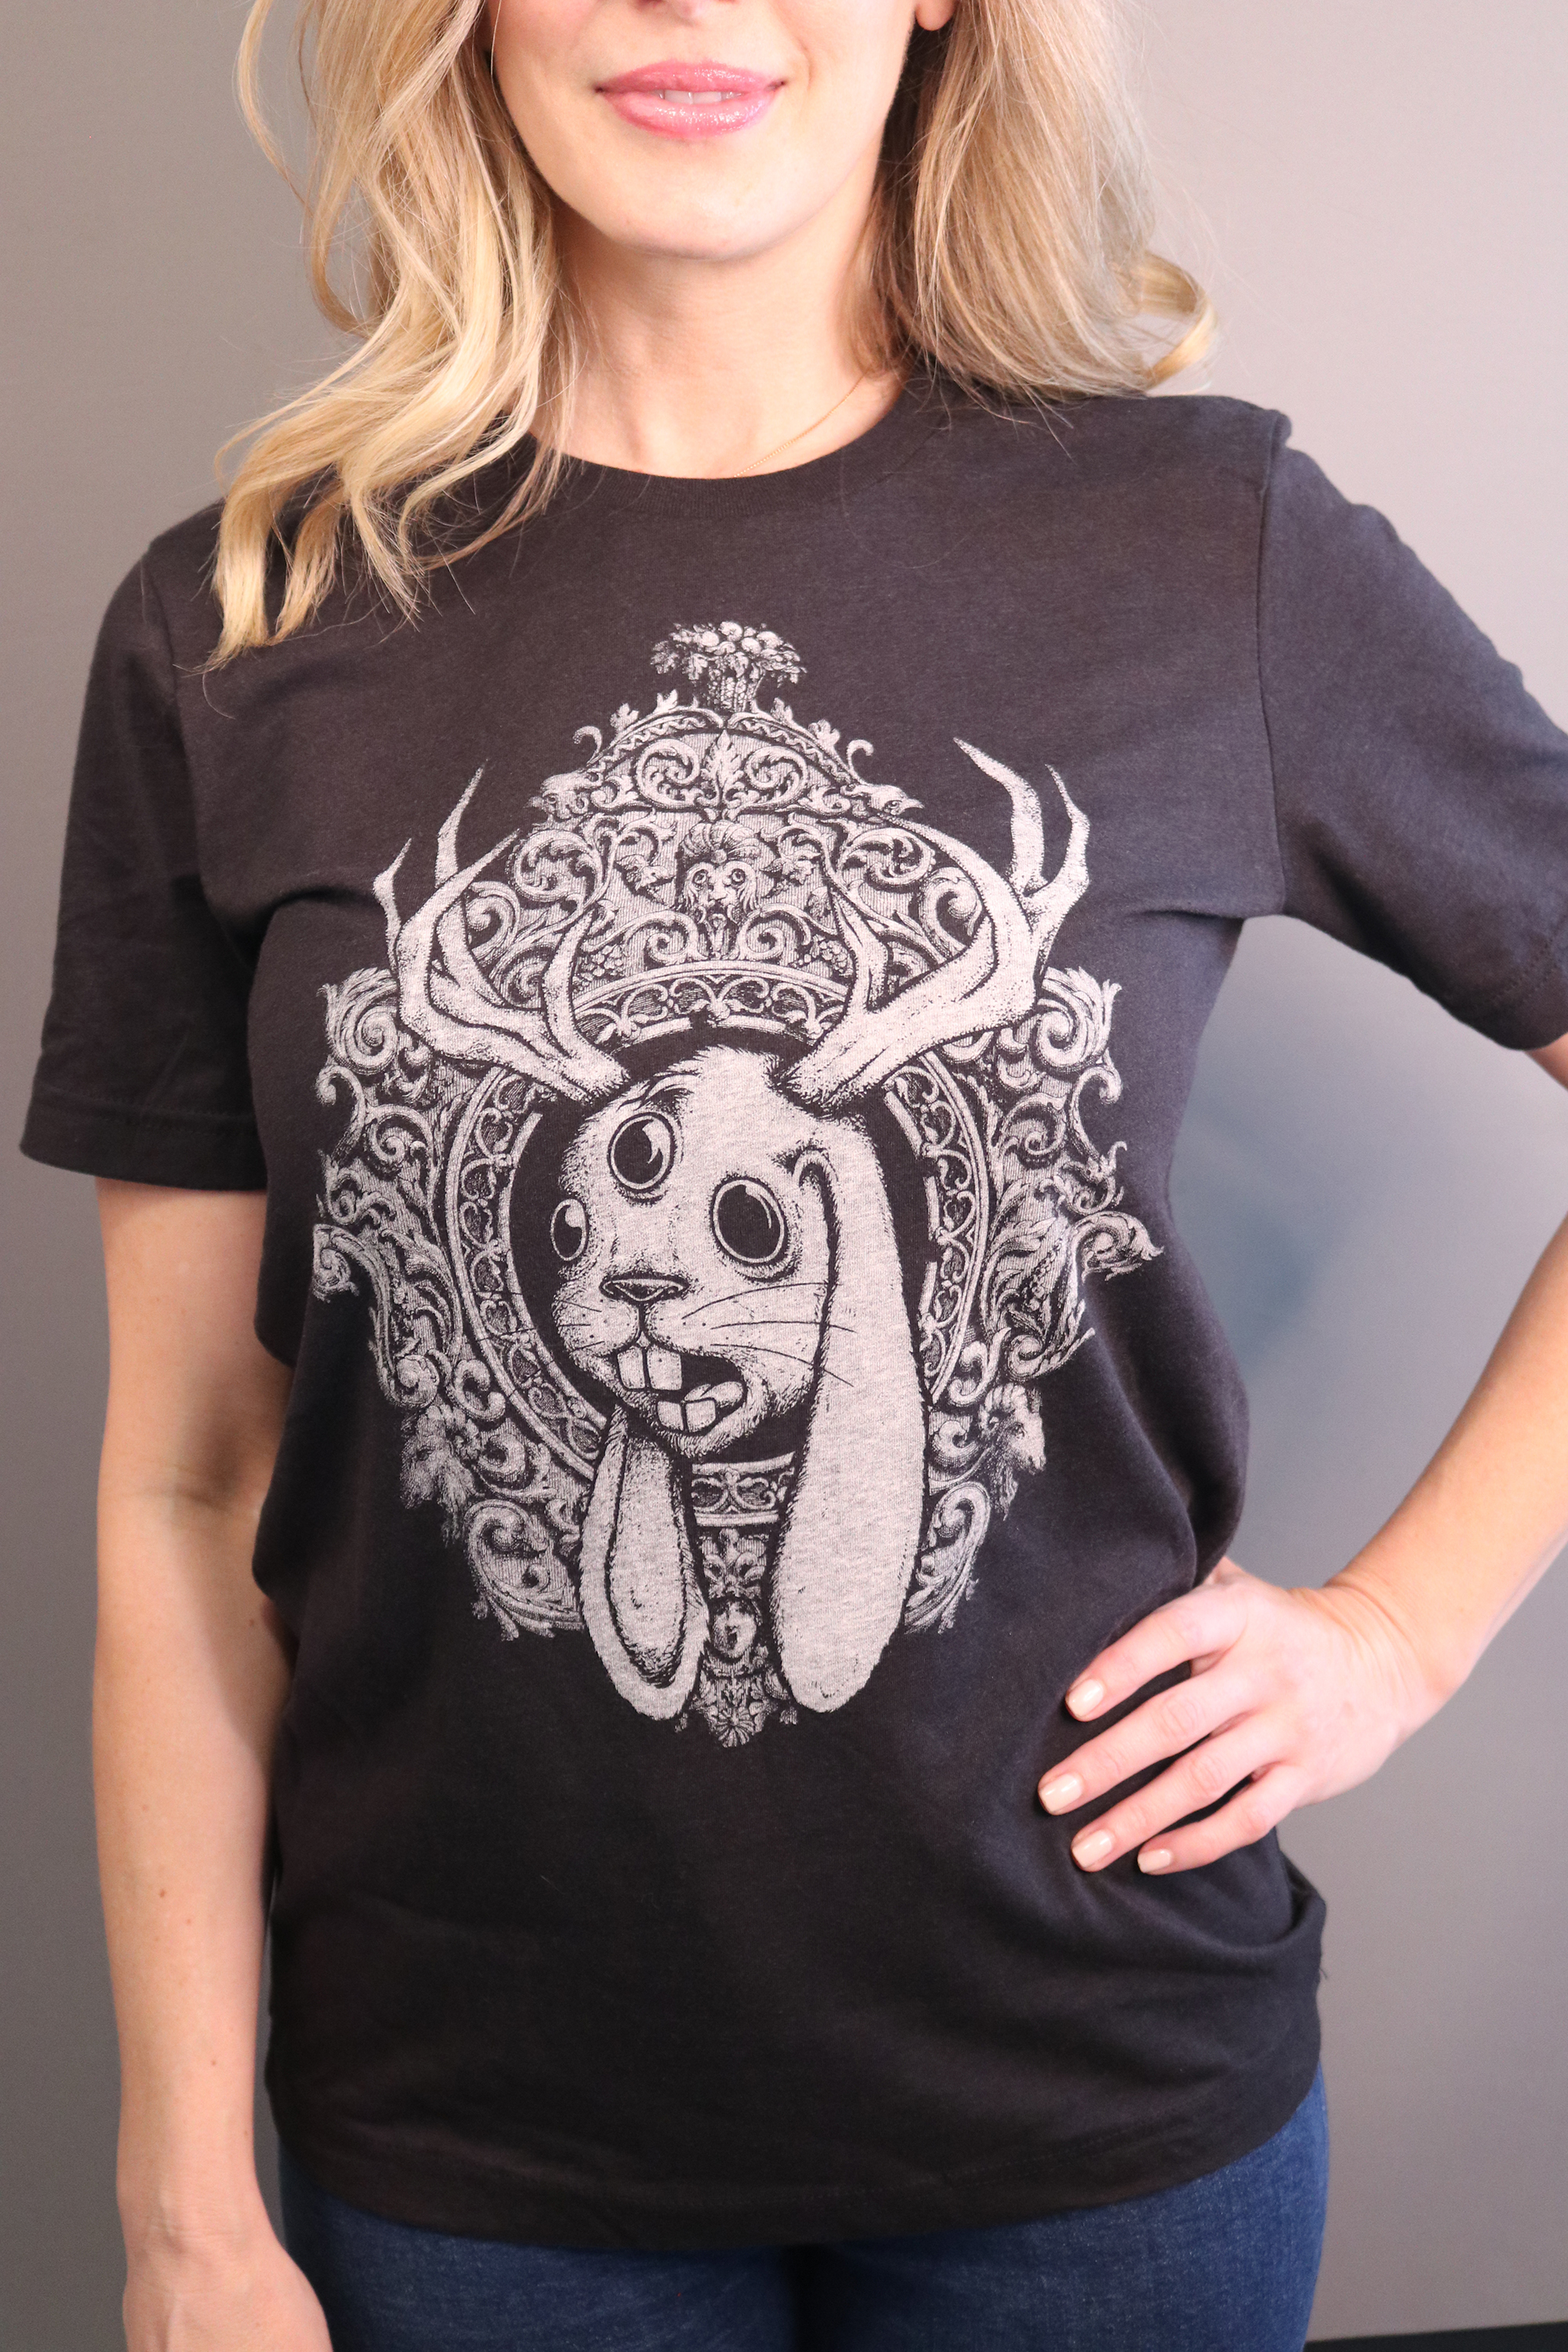 NEW - 'JACKALOPE' T-Shirt (distressed) Black/Navy Heather - UNISEX / ALL SIZES